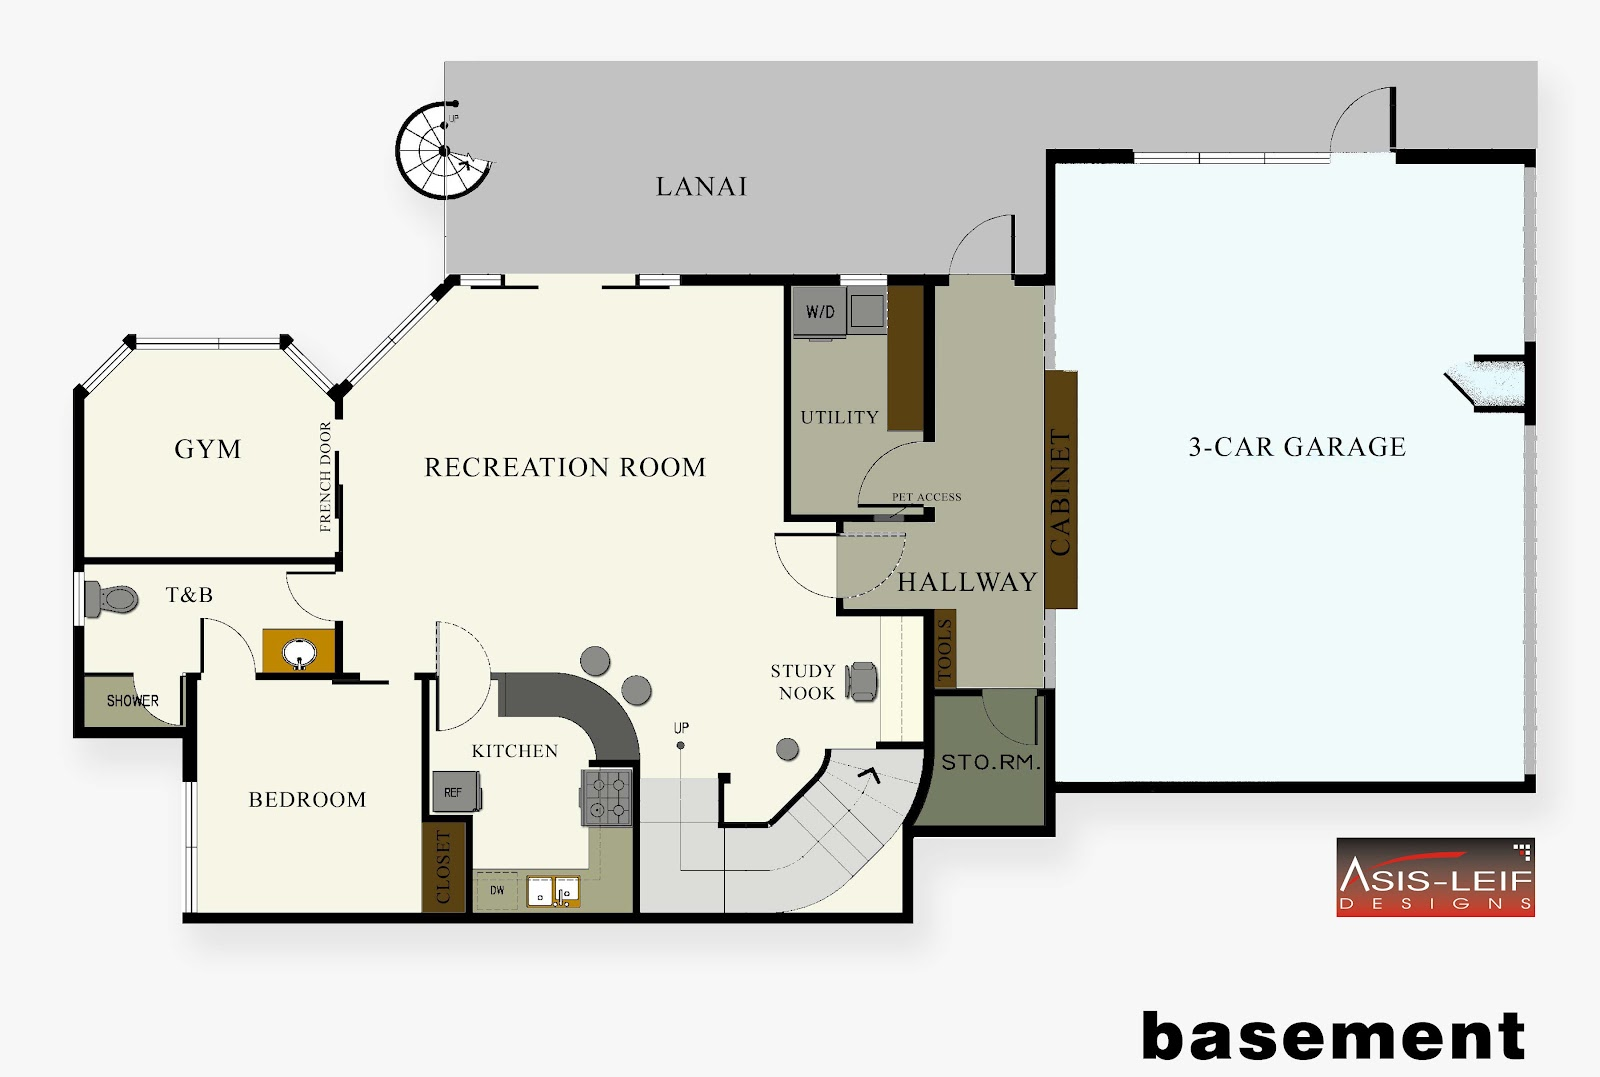 Basement floor plans ideas house plans 1849 Modern home plans with basement